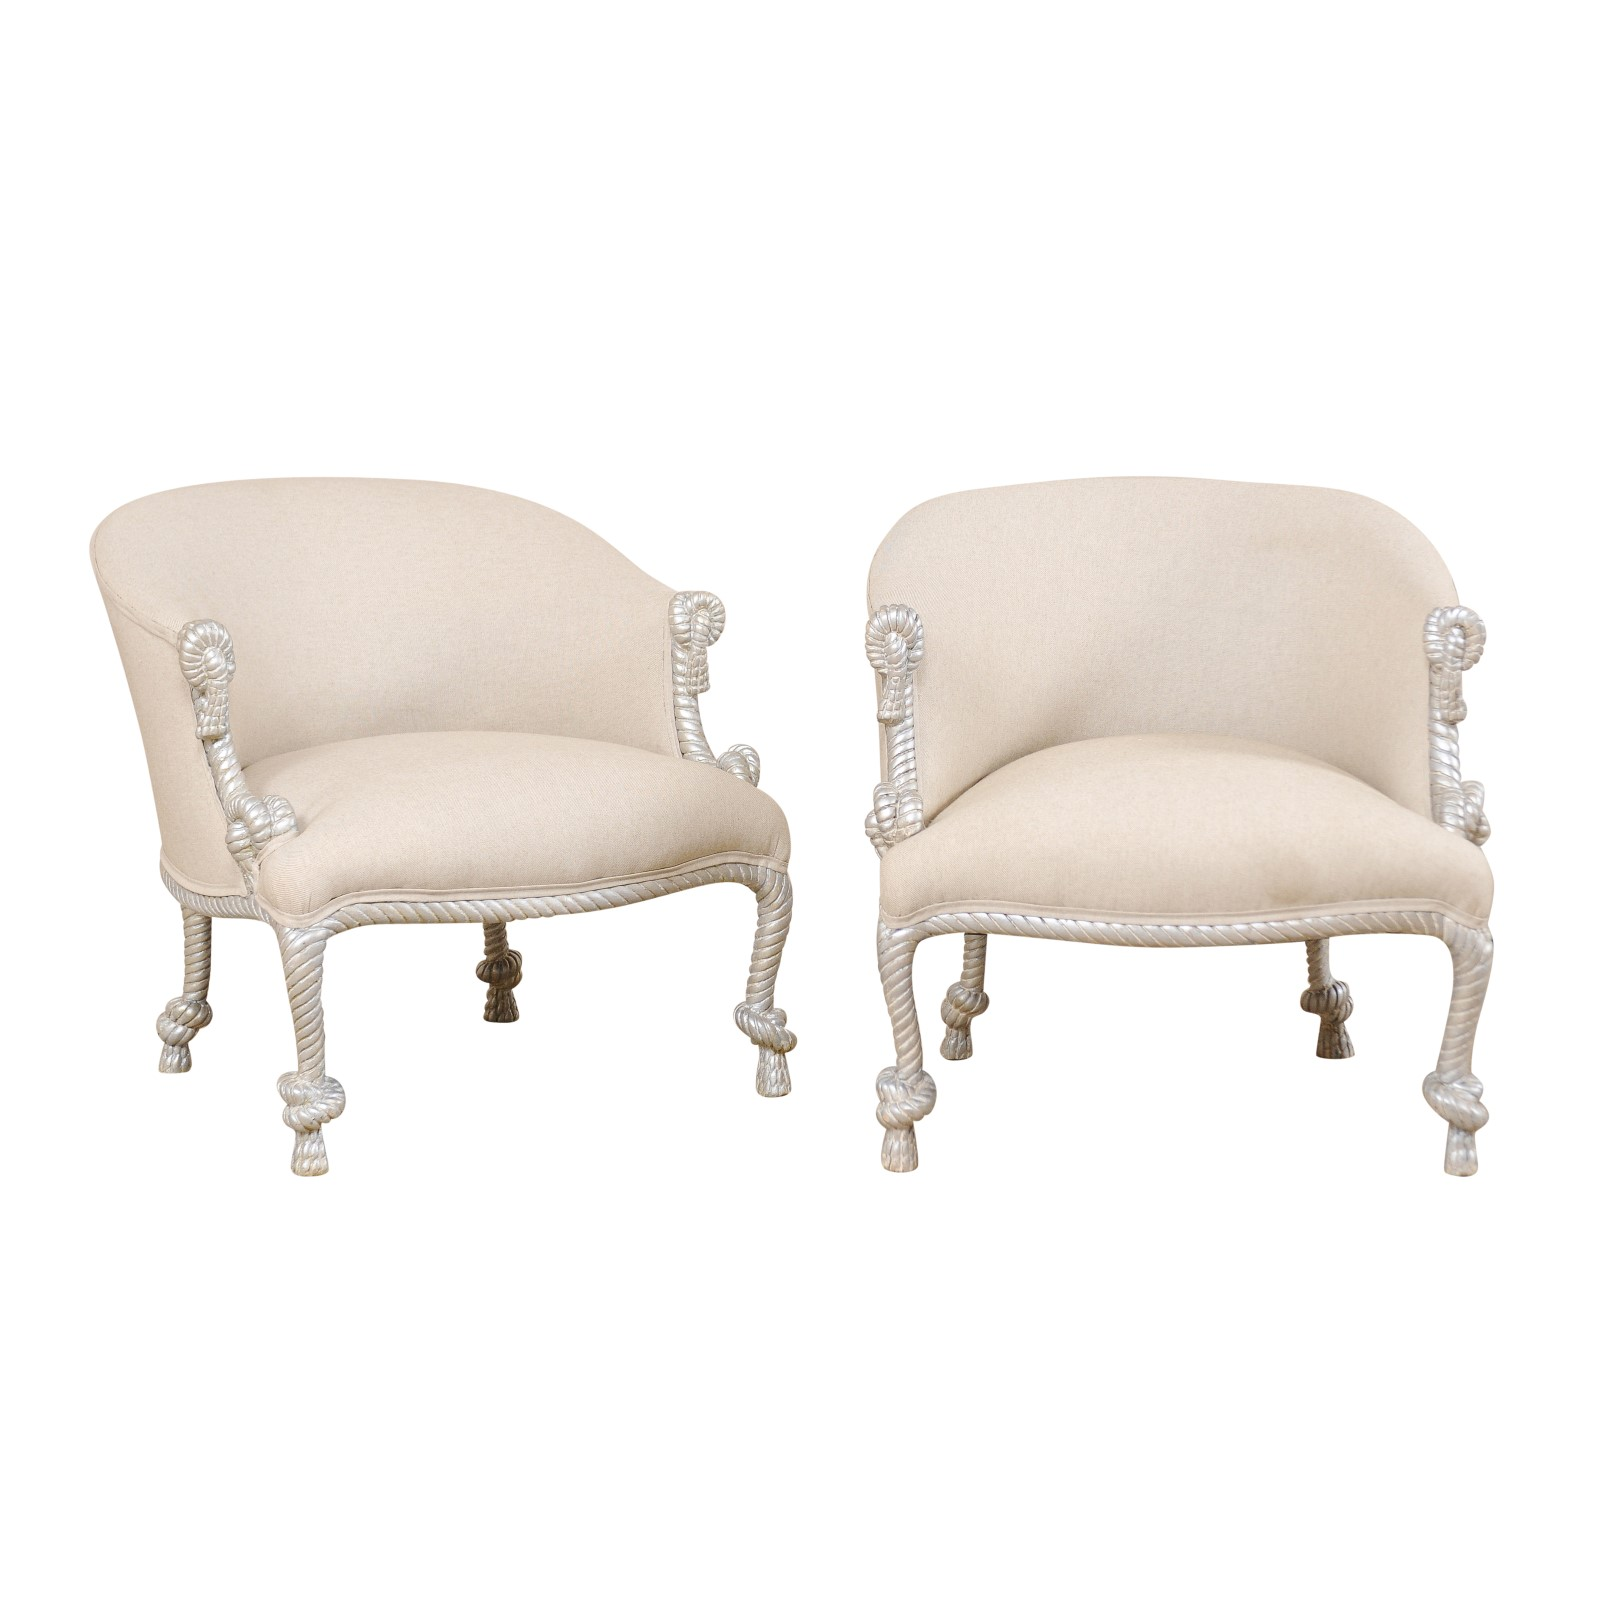 Antique Accent Chairs Pair Italian Barrel Accent Chairs 387 A Tyner Antiques